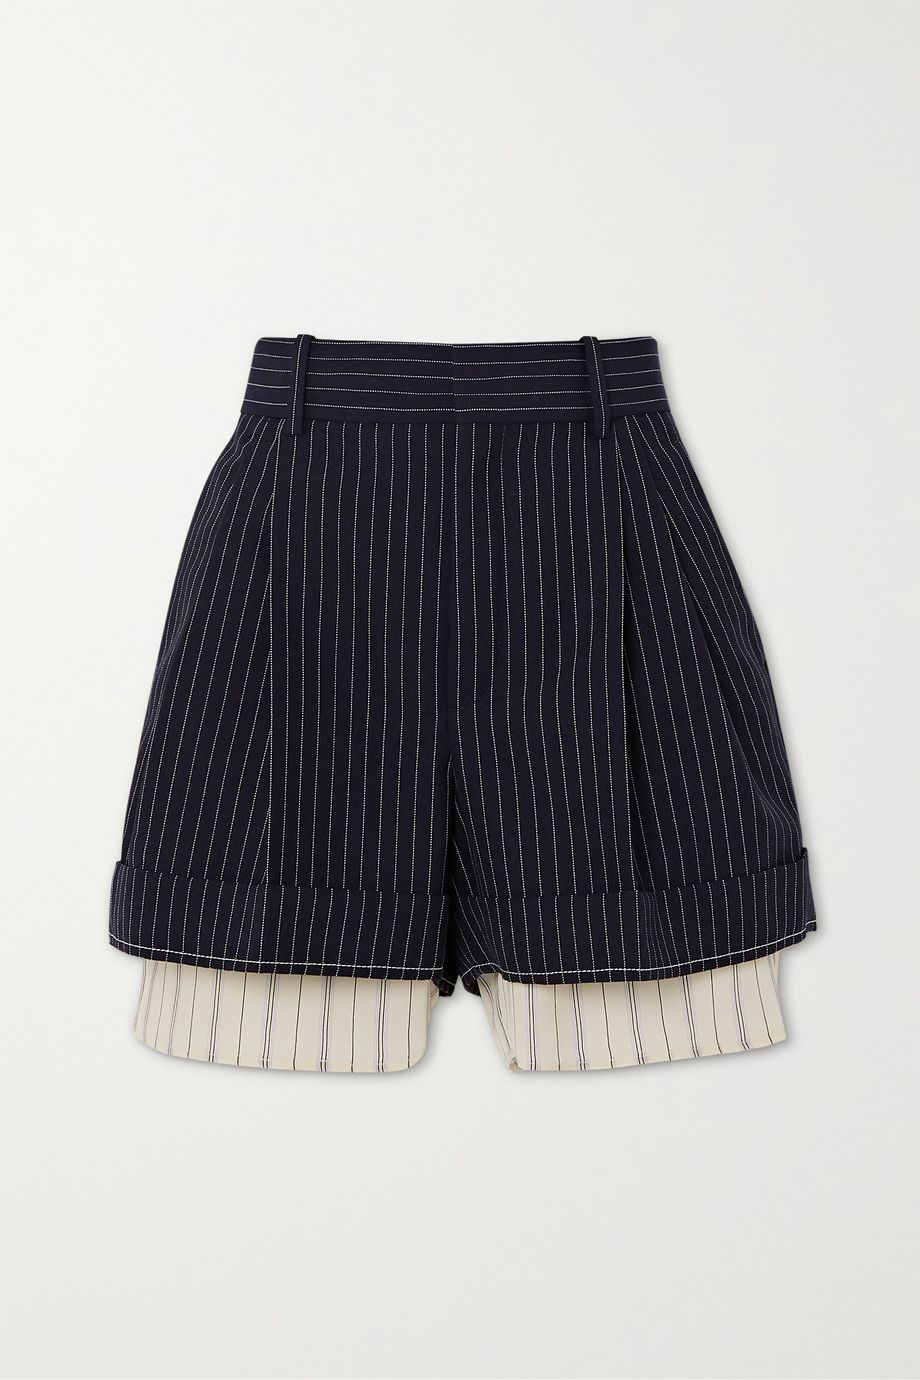 Chloé Layered pinstriped grain de poudre wool and silk shorts